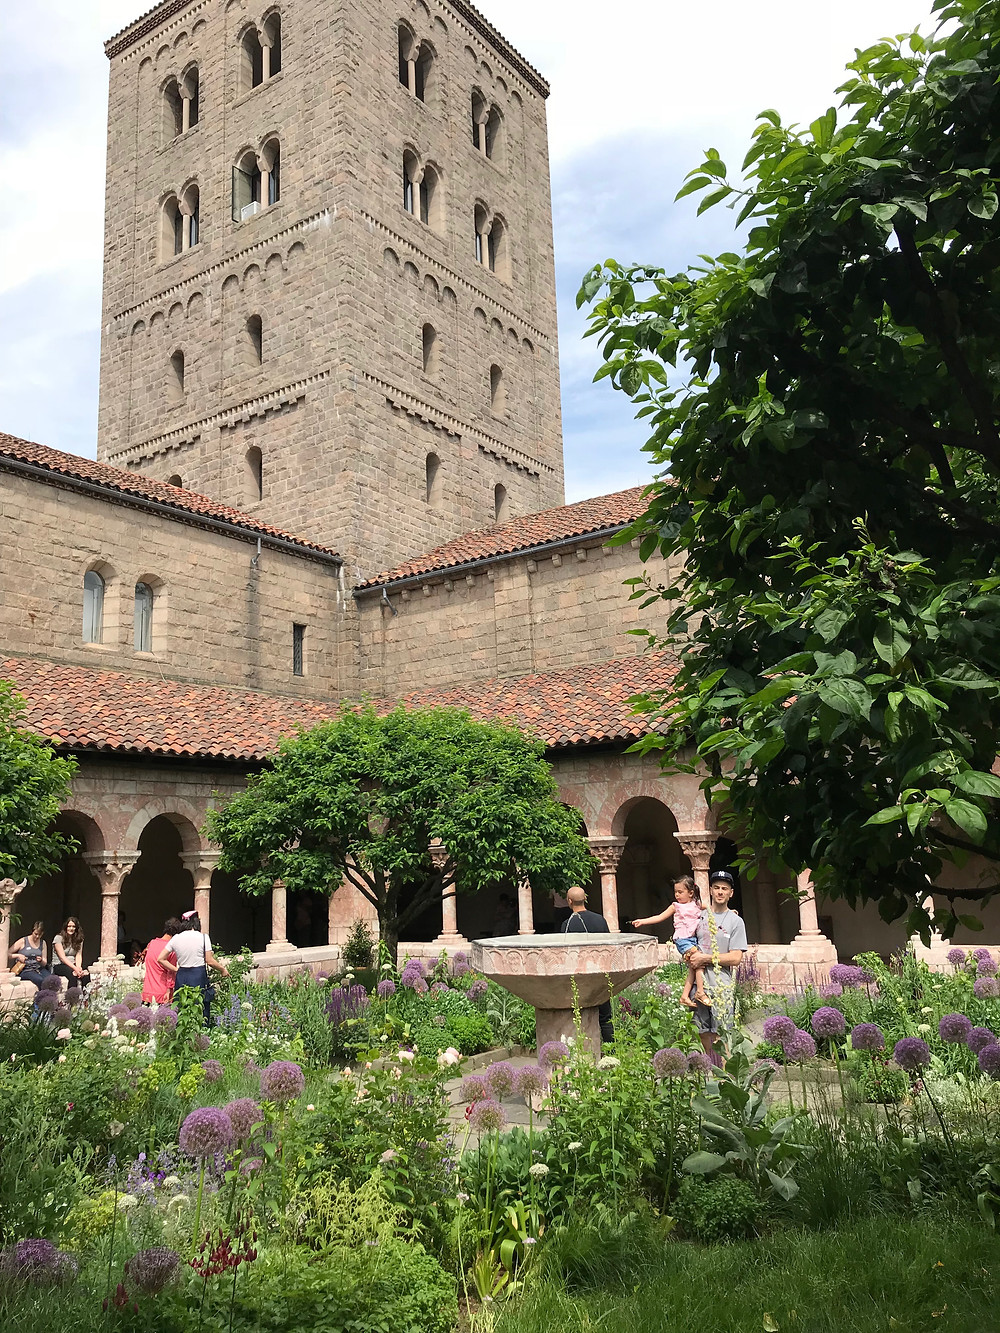 The Met Cloisters, Fort Tryon, Curious G and Me, nyc with kids, cultured kids